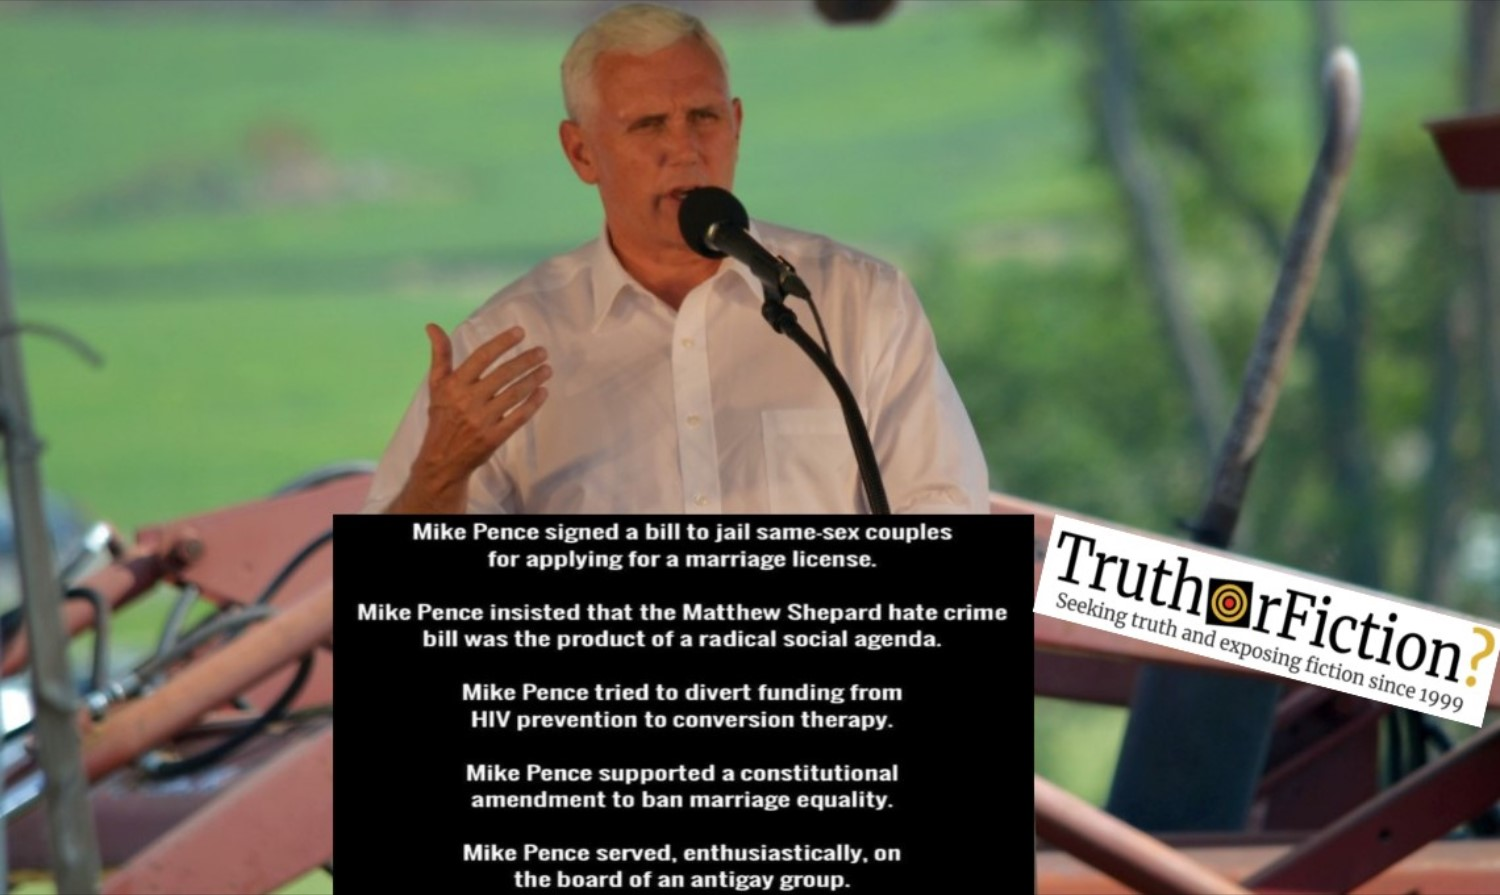 Mike Pence, LGBTQ Communities, and 'a Radical Social Agenda'